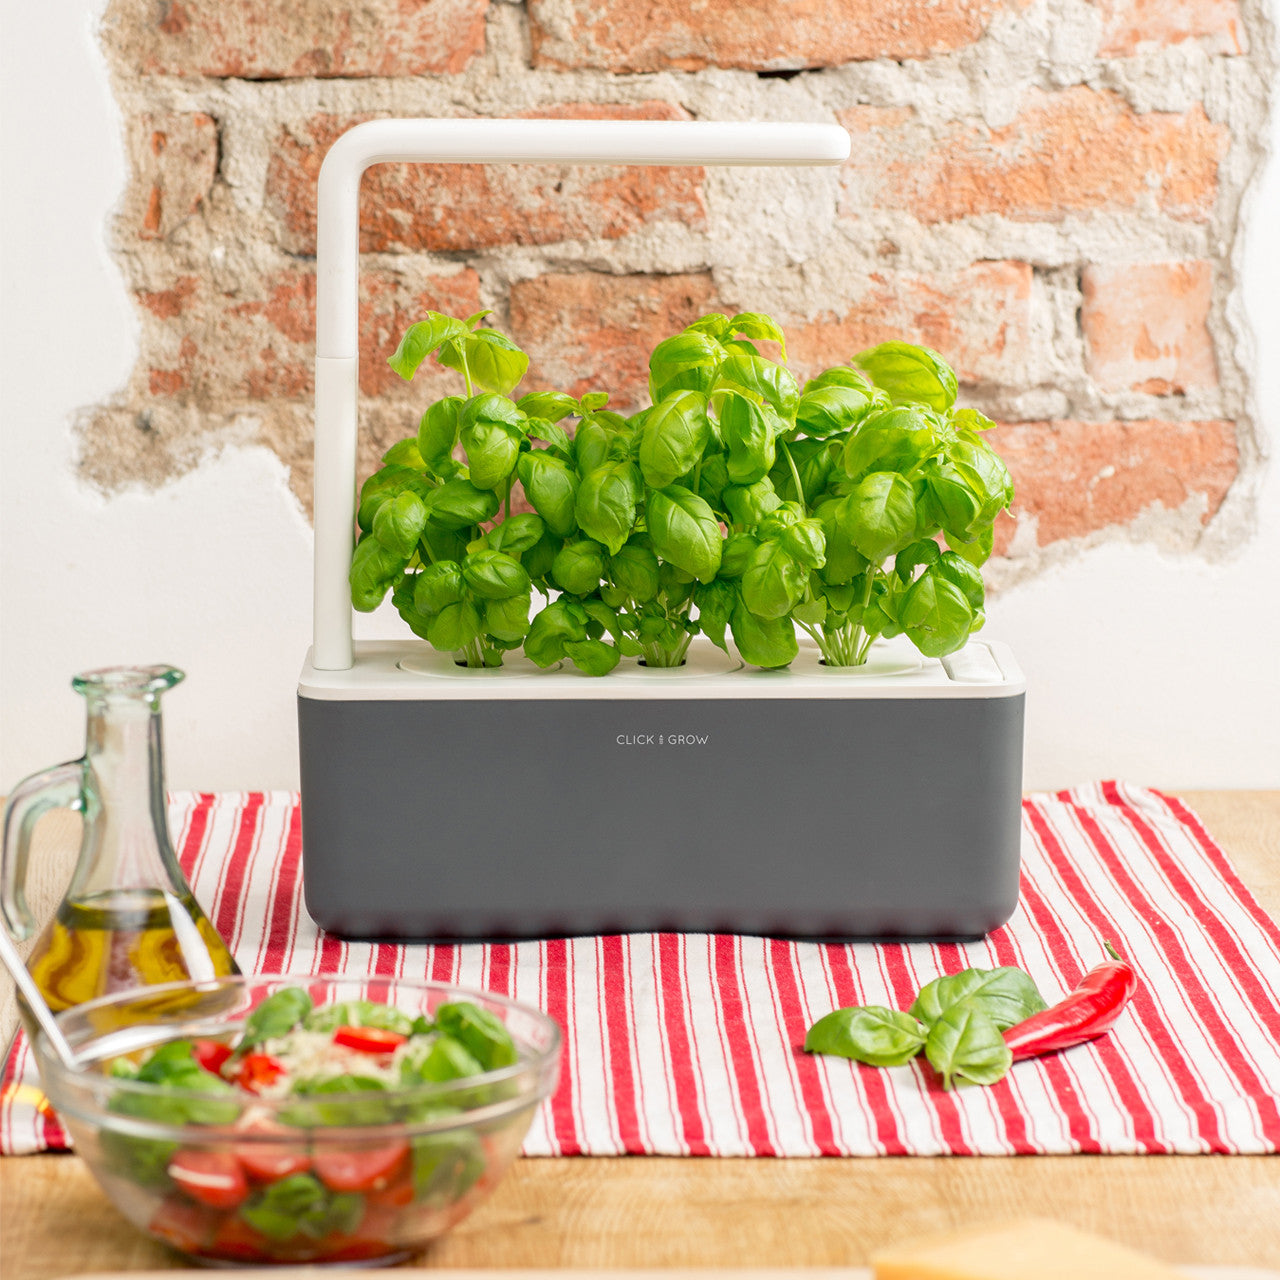 Grow fresh food at home with the Click & Grow Smart Garden 3.